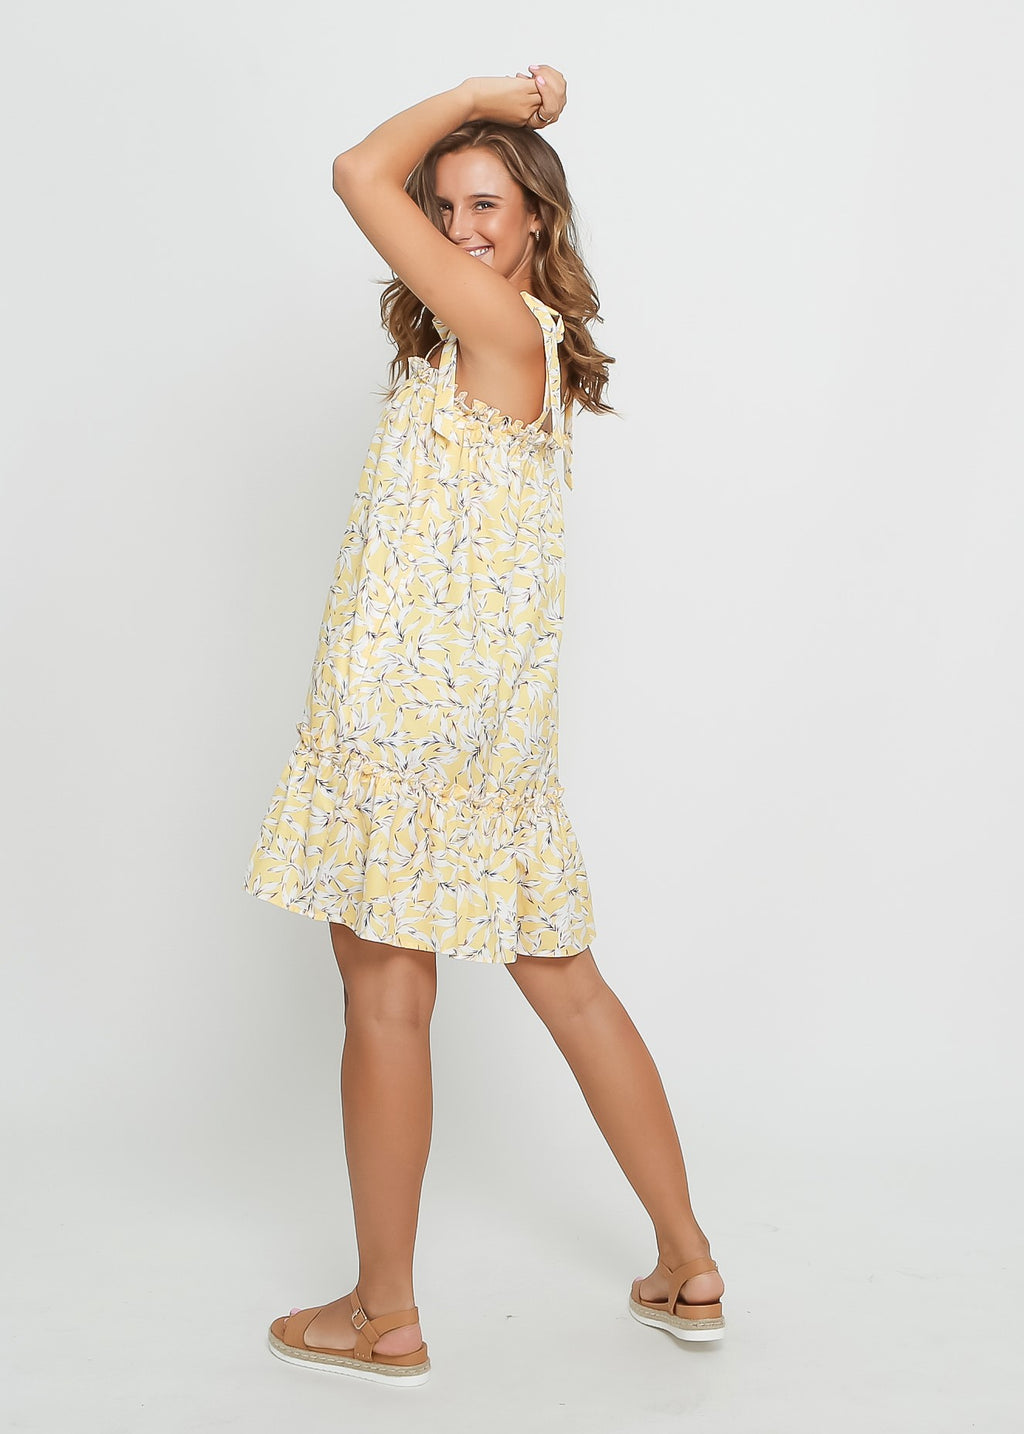 SOFIA DRESS - YELLOW LEAF